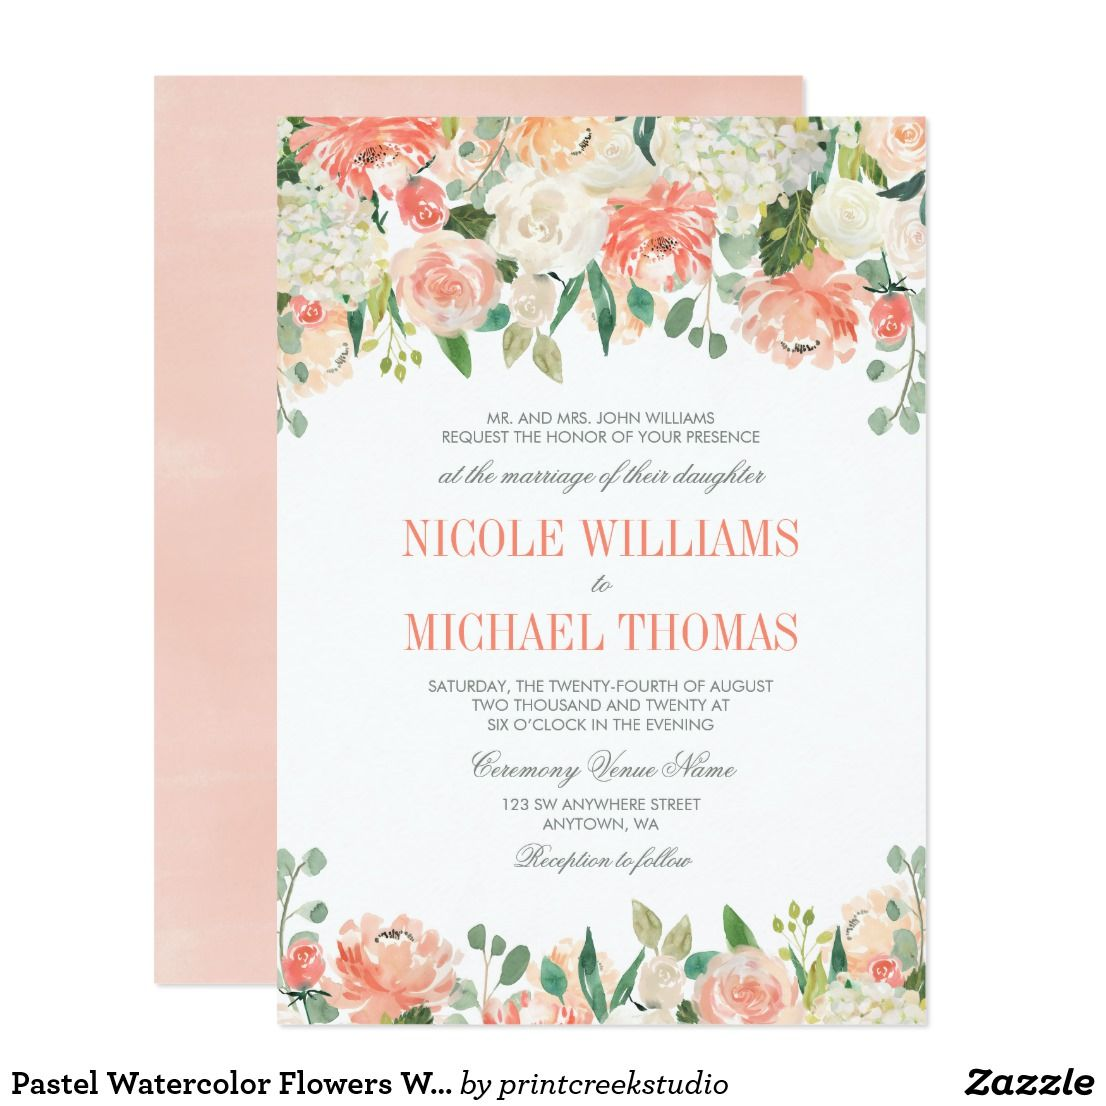 Pastel Watercolor Flowers Wedding Invitations Zazzle Com In 2020